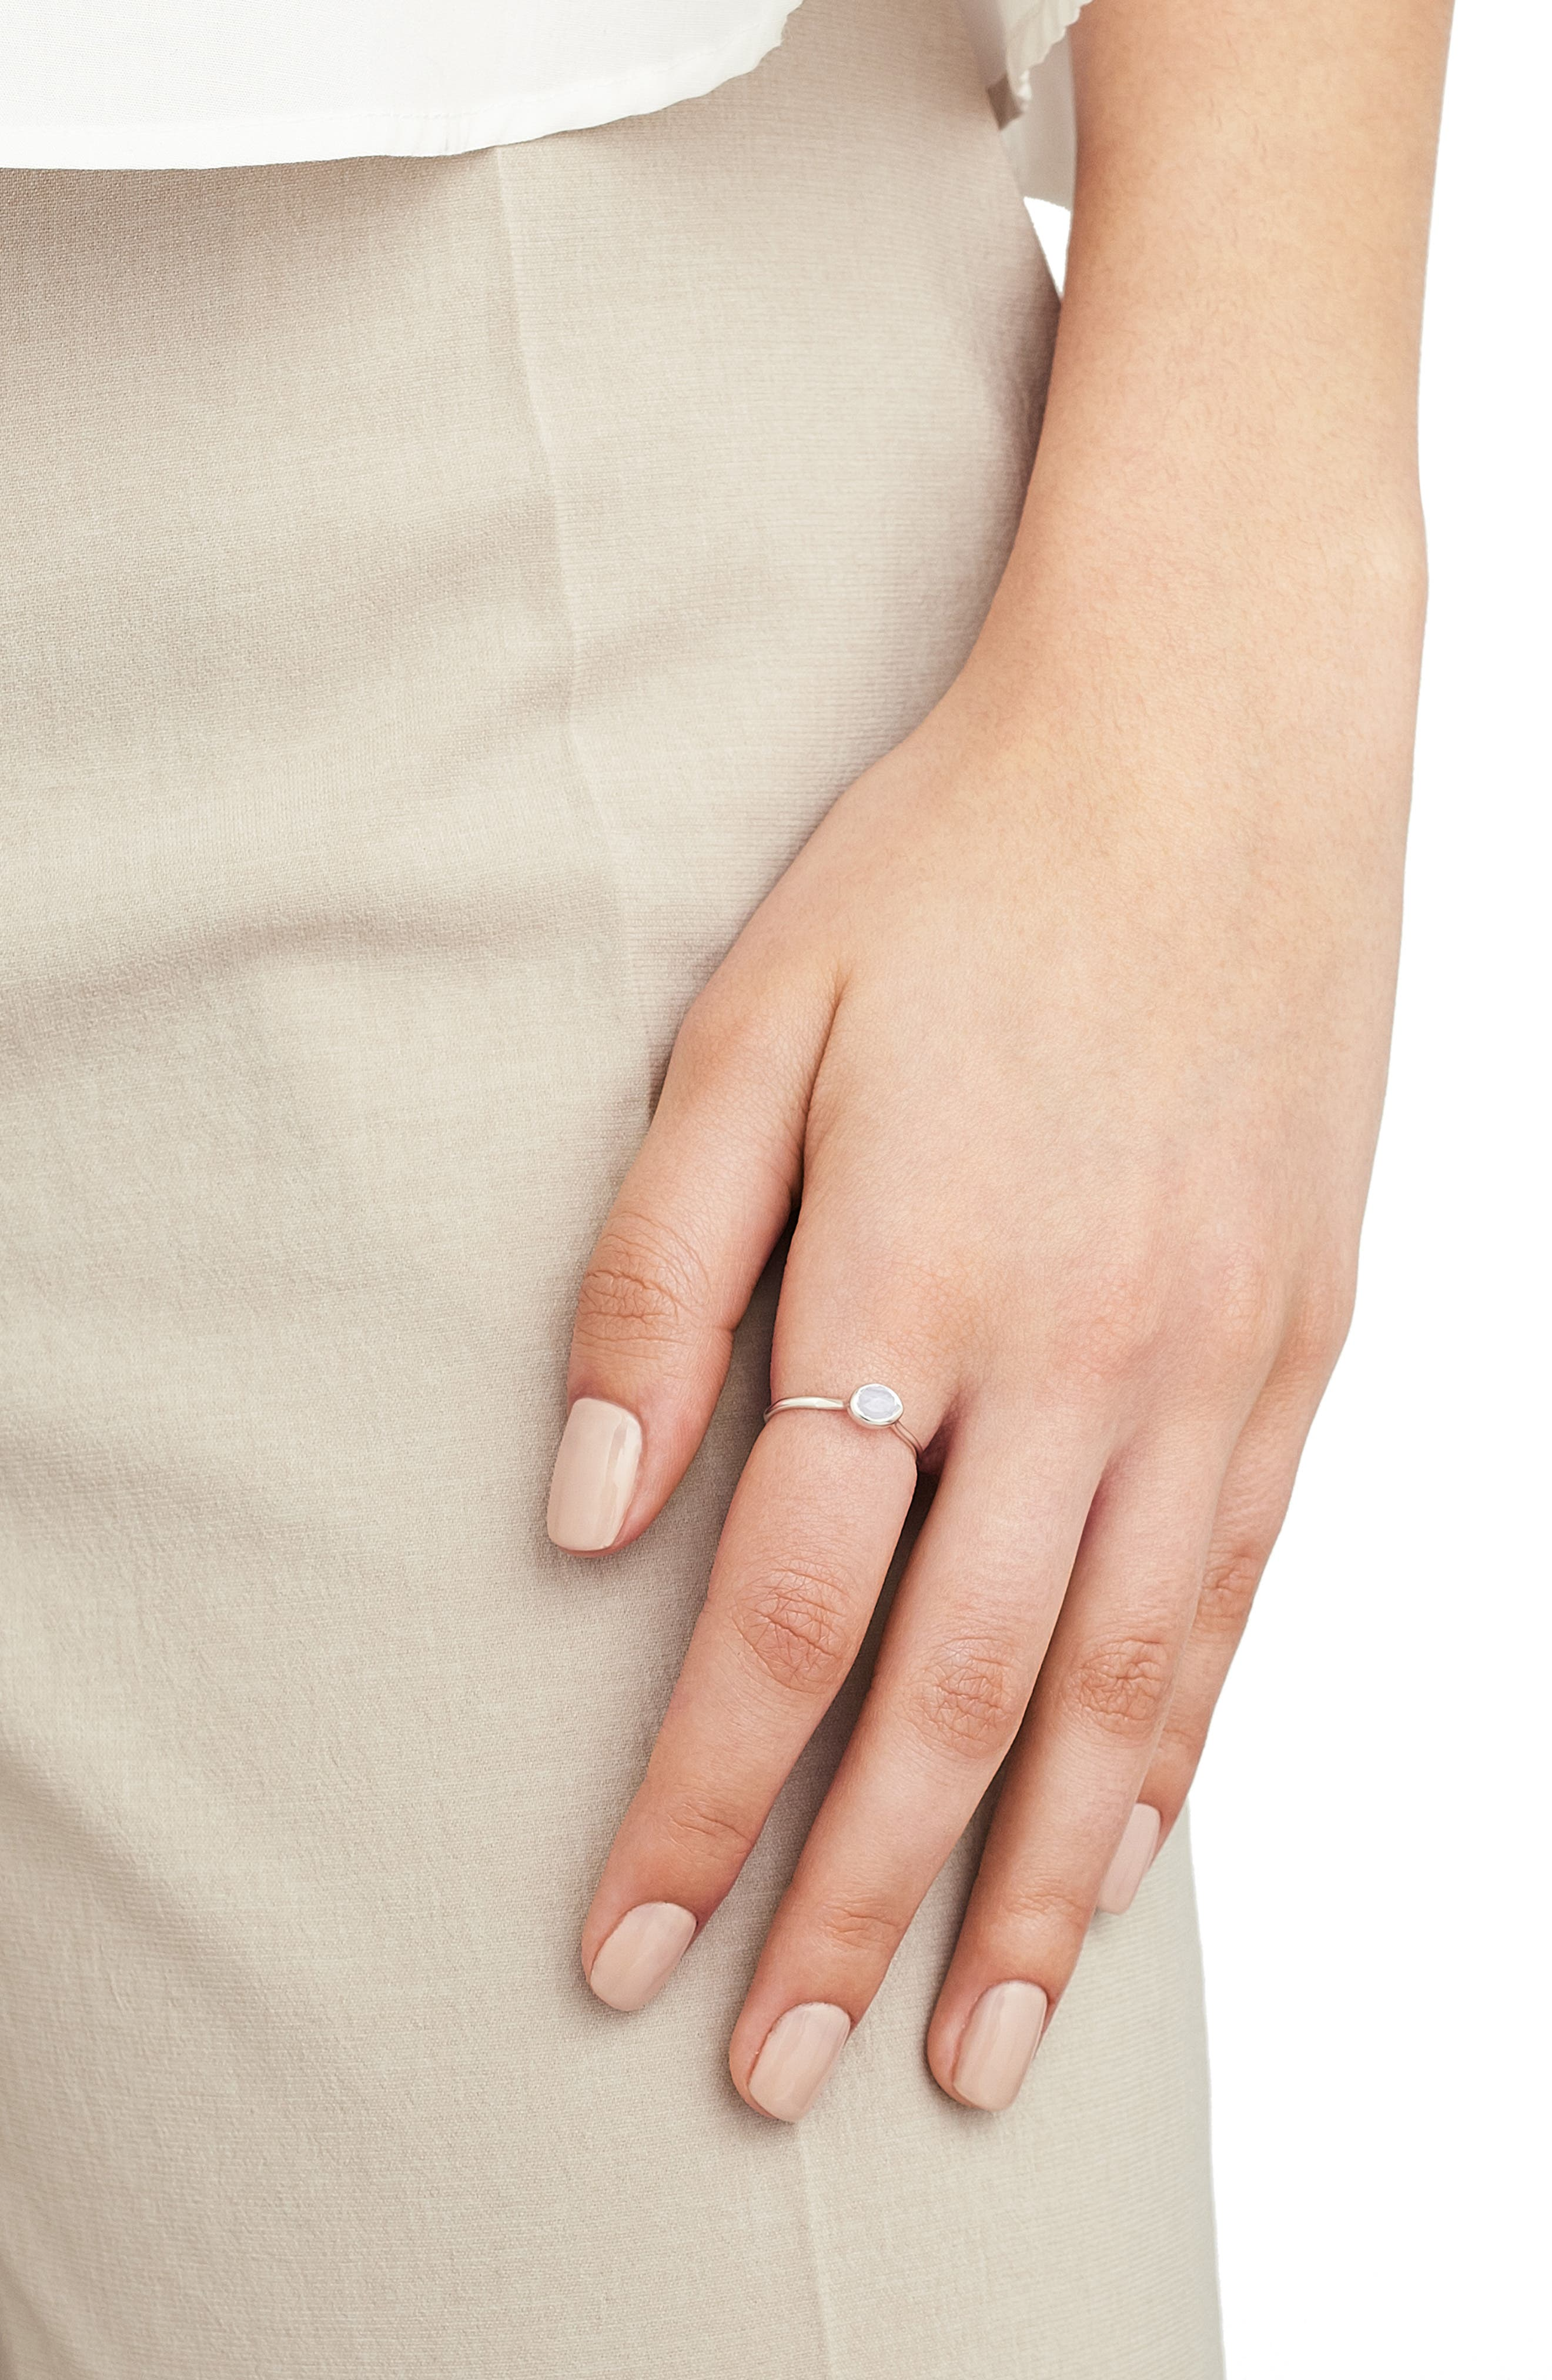 MONICA VINADER, Siren Small Stacking Ring, Alternate thumbnail 2, color, SILVER/ BLUE LACE AGATE